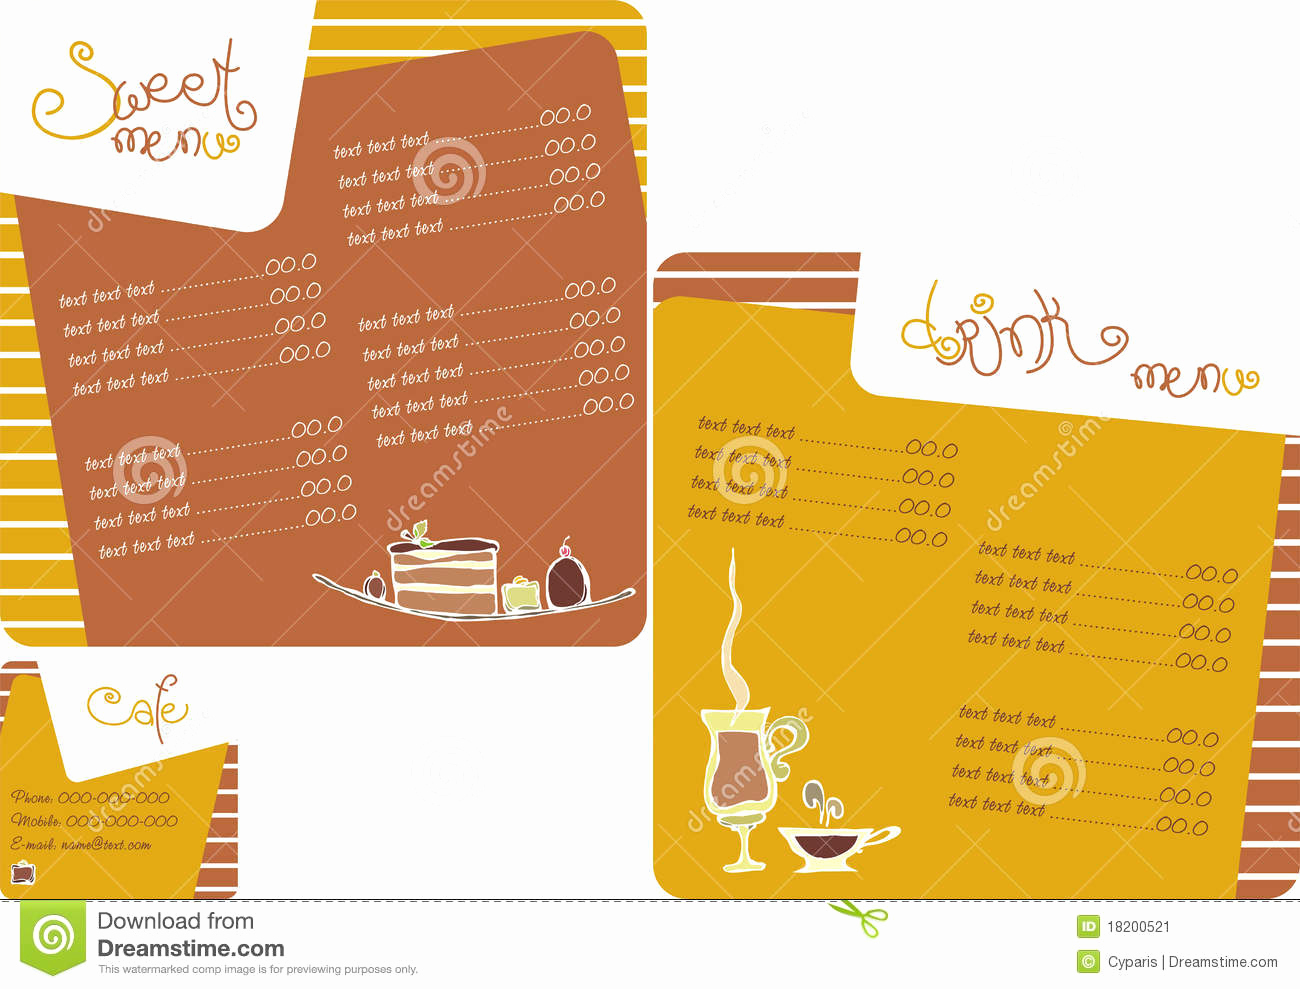 Coffee Shop Menu Template Unique Template Menu for Coffee Shop Stock Image Image